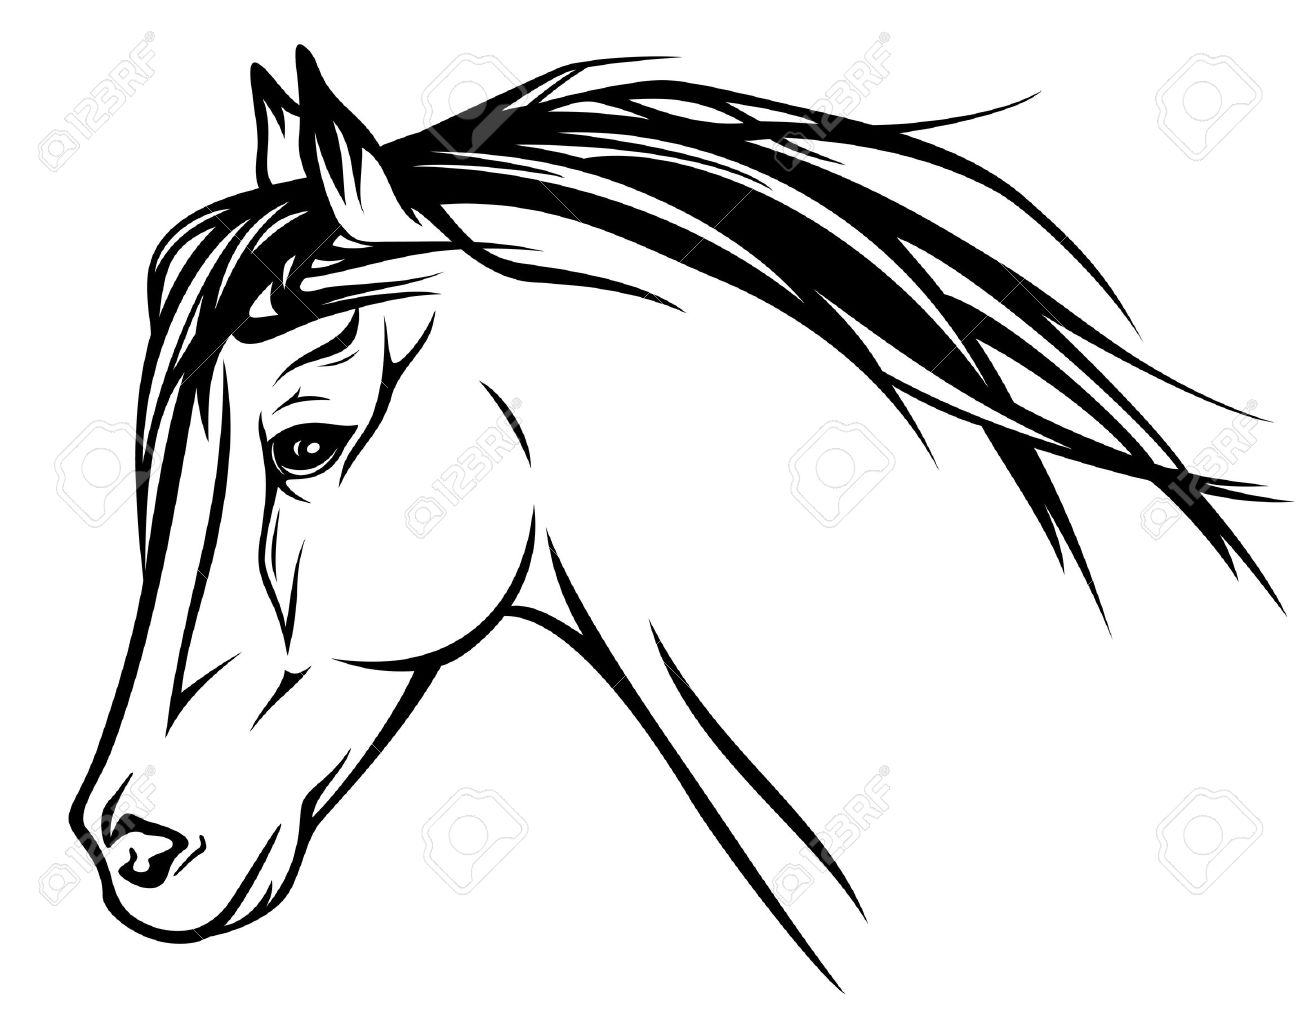 1300x1023 Running Horse Head Black And White Outline Royalty Free Cliparts